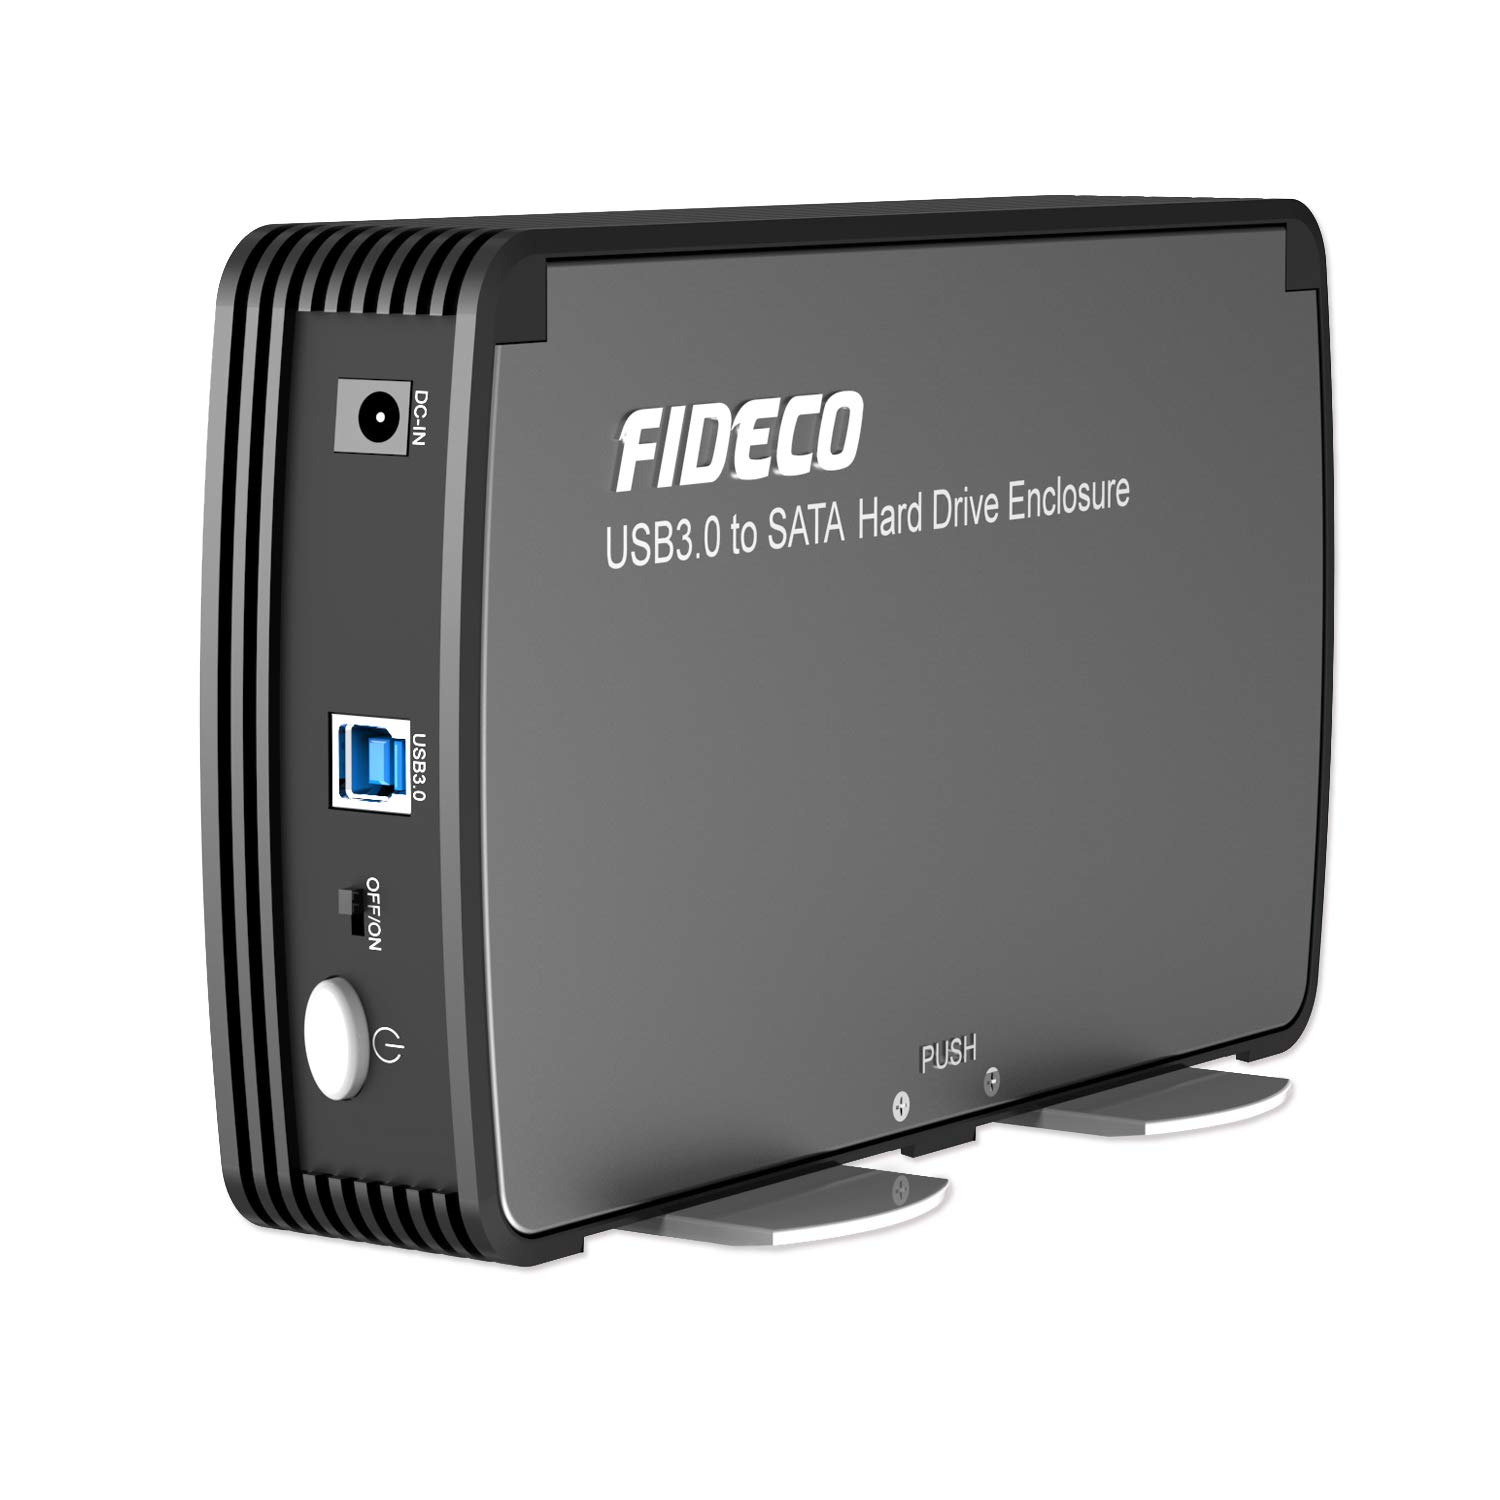 FIDECO 3.5/2.5 Inch Hard Drive Enclosure, USB 3.0 to SATA Aluminium External HDD Case Built-in Cooling Fan Support UASP and 10TB Drives for 3.5/2.5 ...